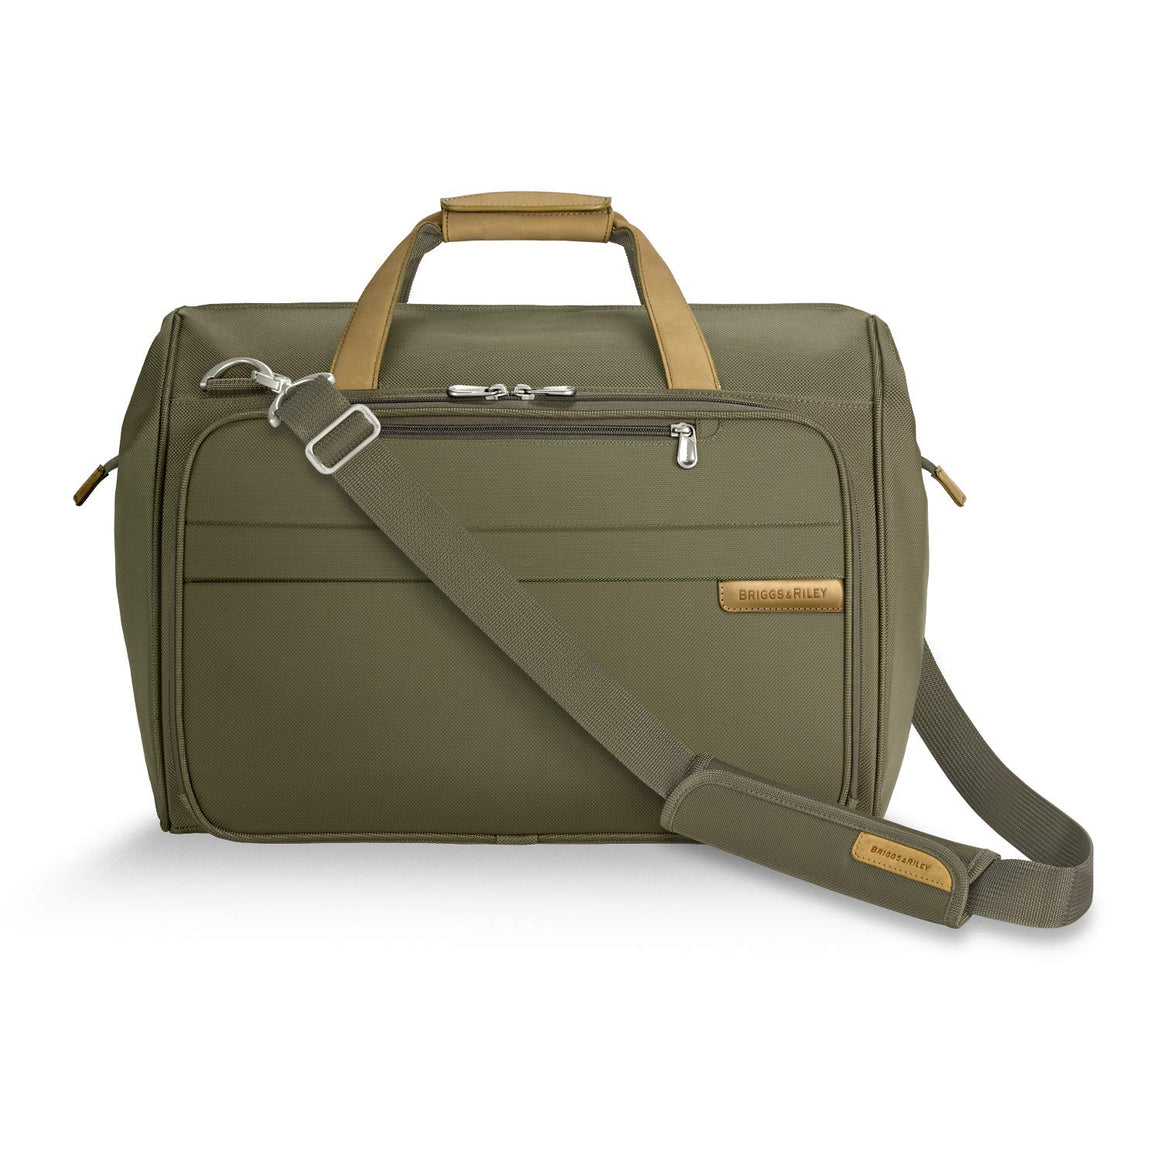 Briggs & Riley Baseline Framed Weekender Duffel Bag